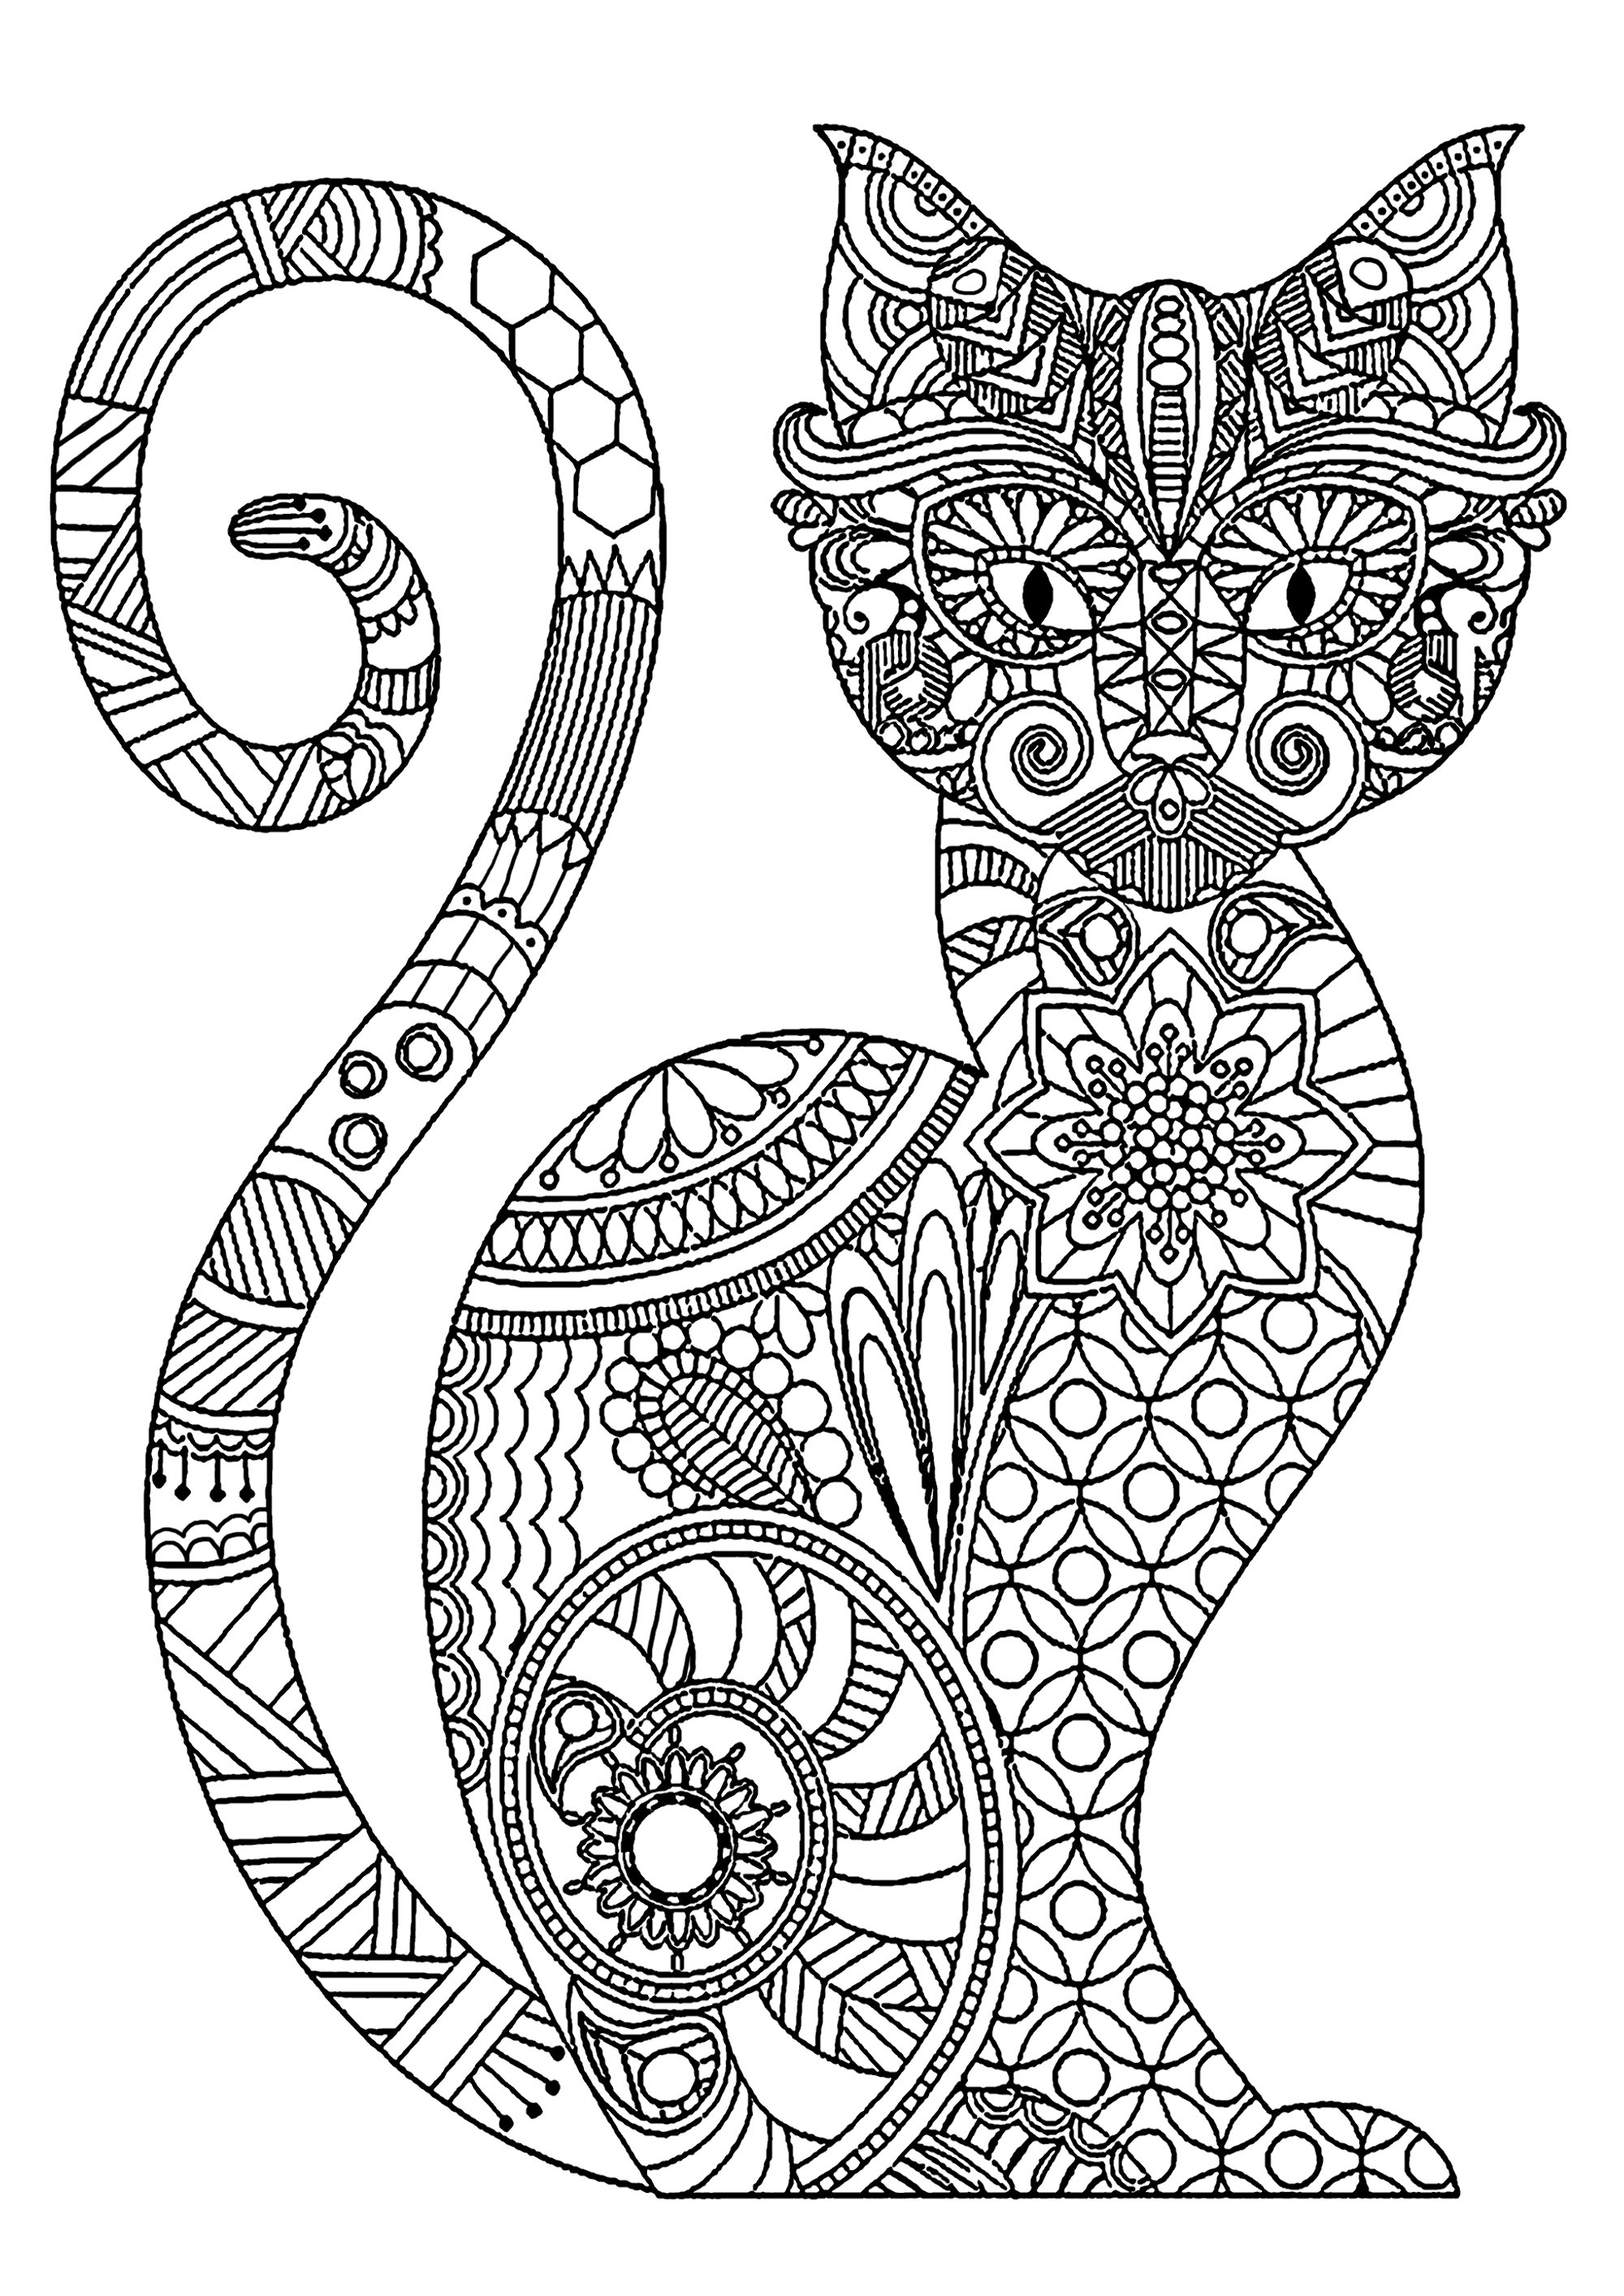 coloring sheet for adults 10 toothy adult coloring pages printable off the cusp for sheet adults coloring